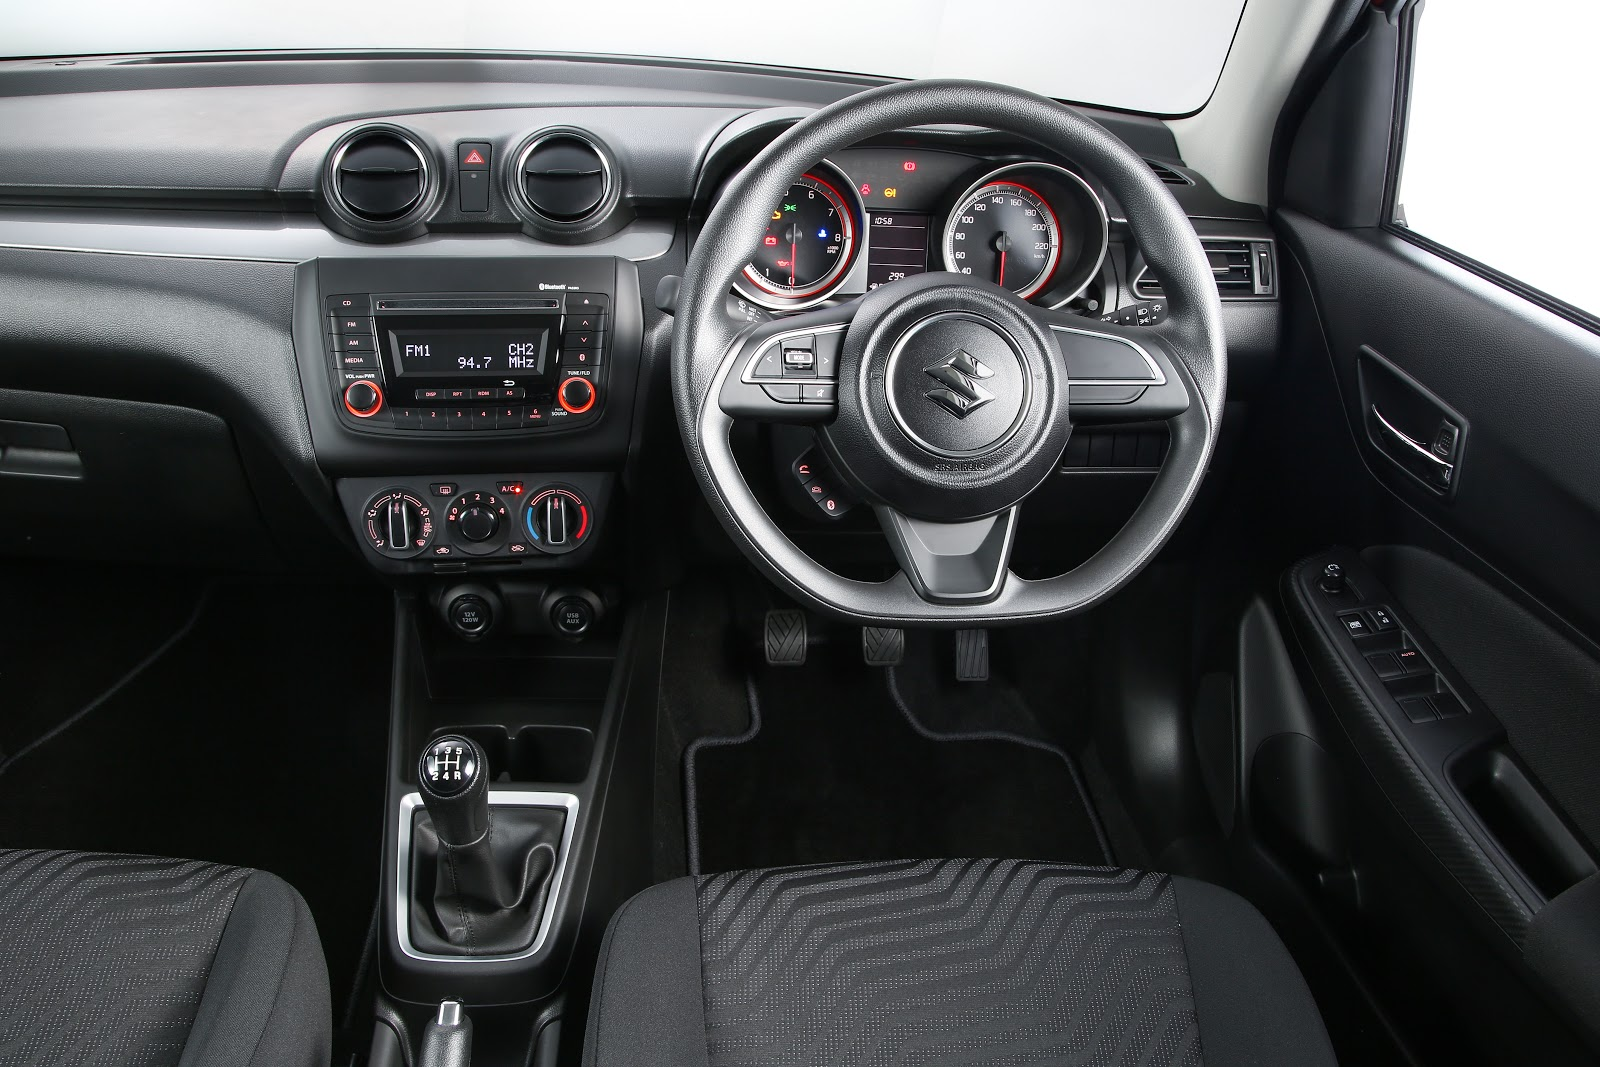 2018 Suzuki Swift dashboard